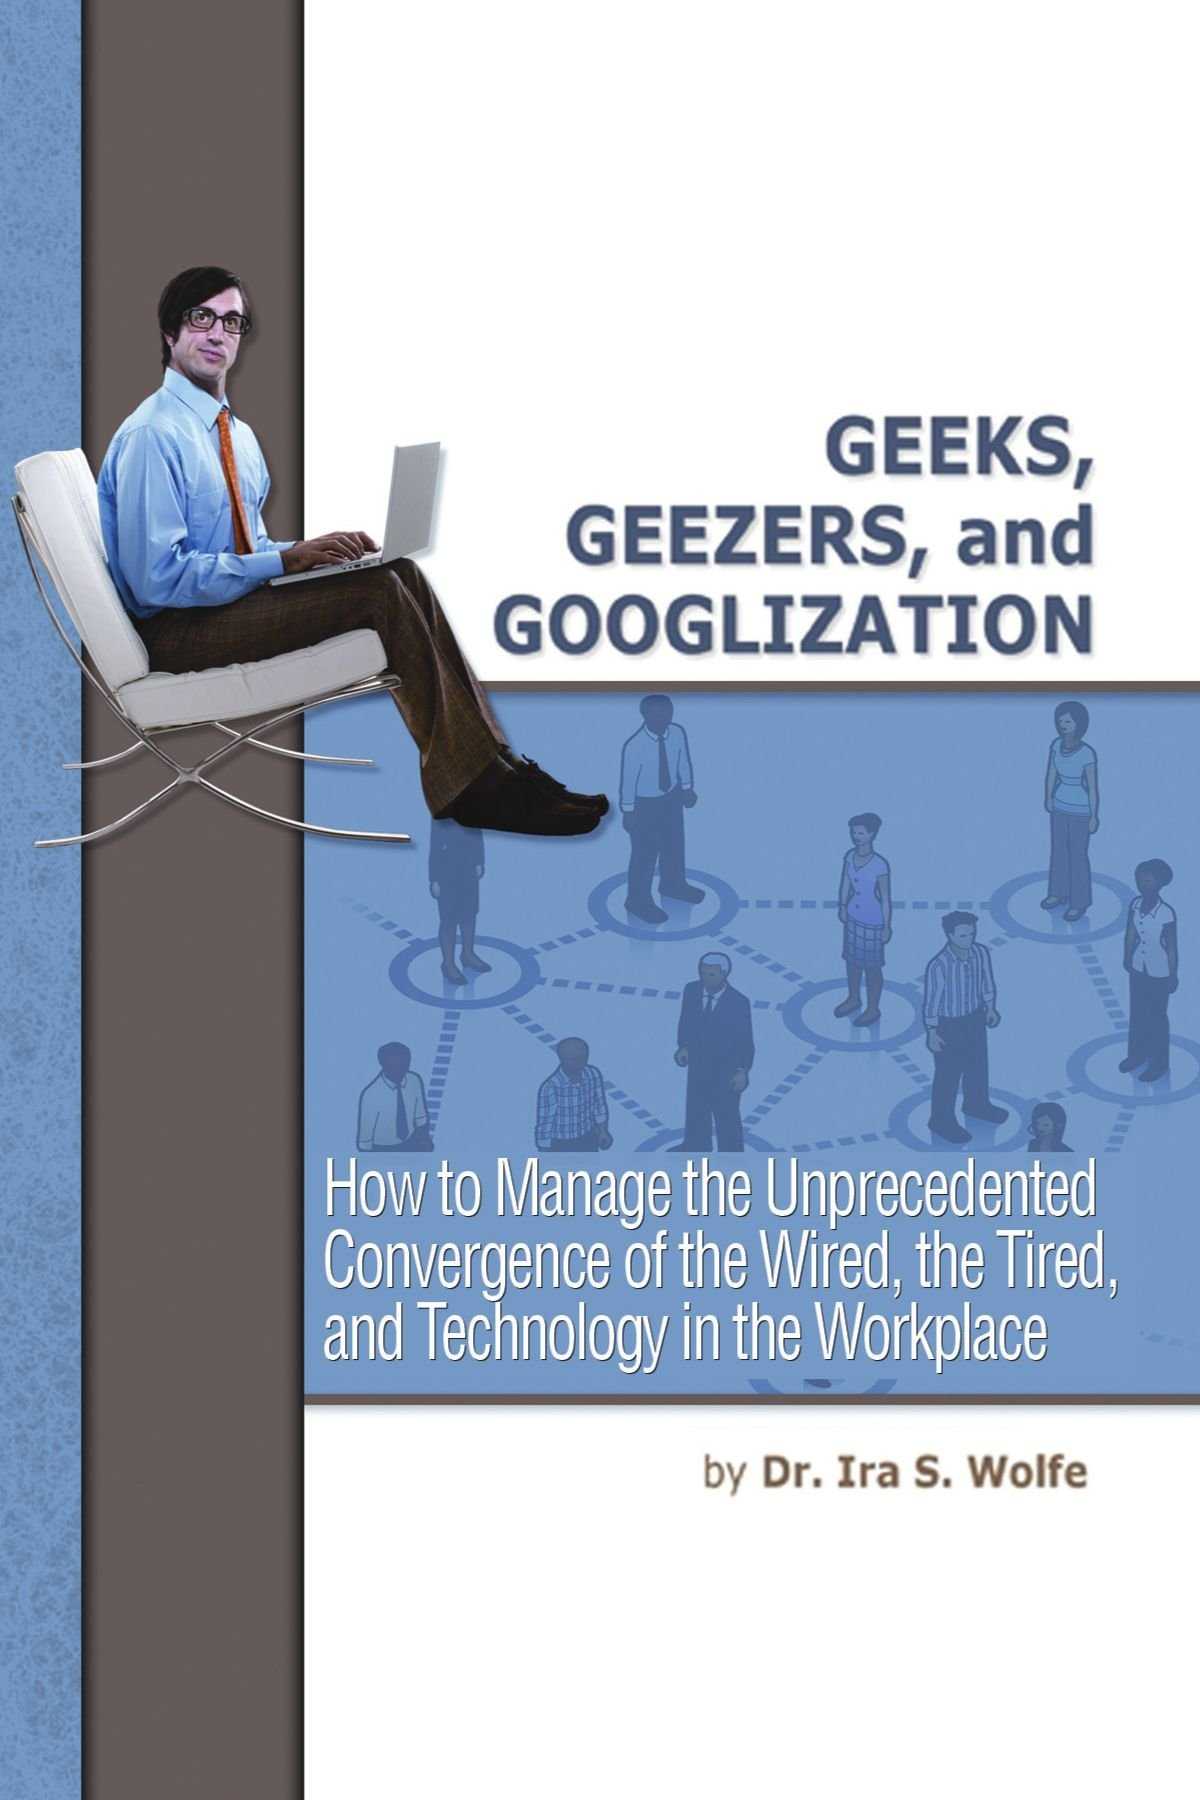 Geeks, Geezers, and Googlization: How to Manage the Unprecedented ...